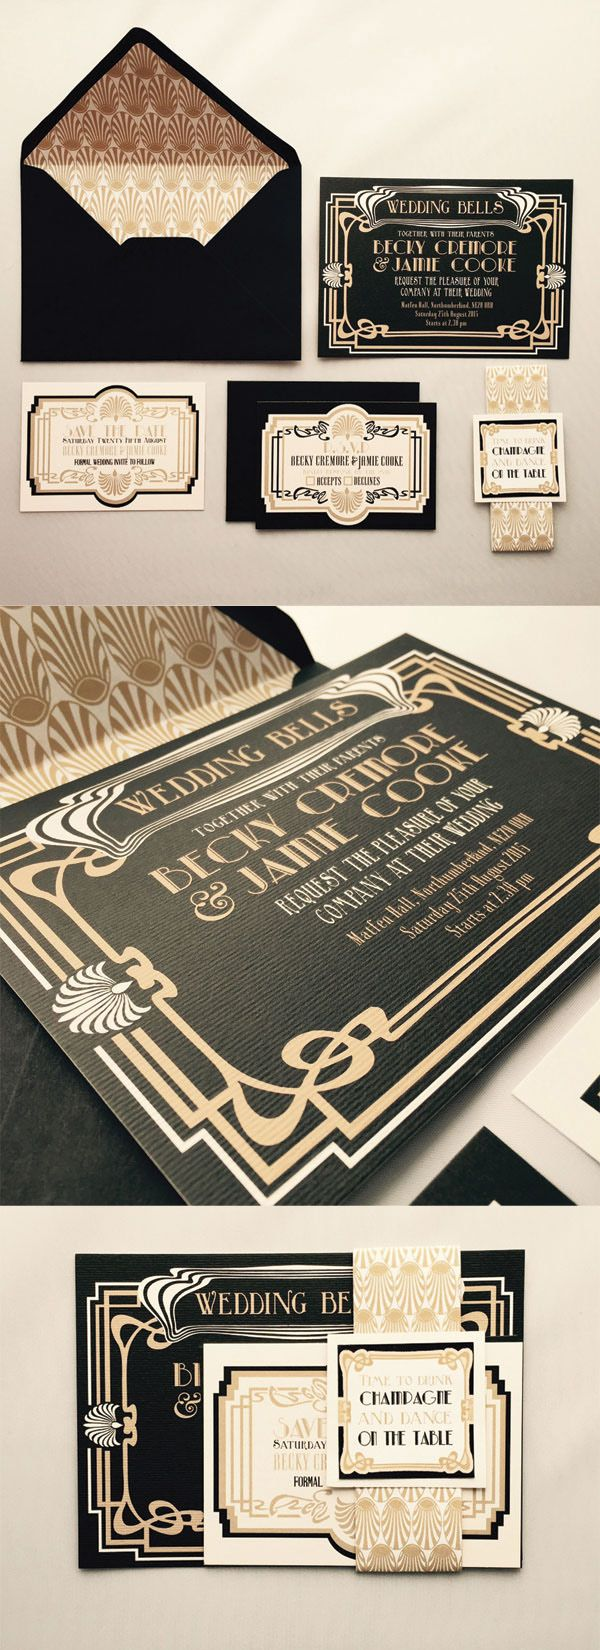 Art Deco wedding invitations. These pretty black and gold 1920s wedding invitations would be perfect for a great Gatsby inspired wedding. Includes Invite, Save the Date, RSVP, Belly Band and Envelopes with matching inserts.